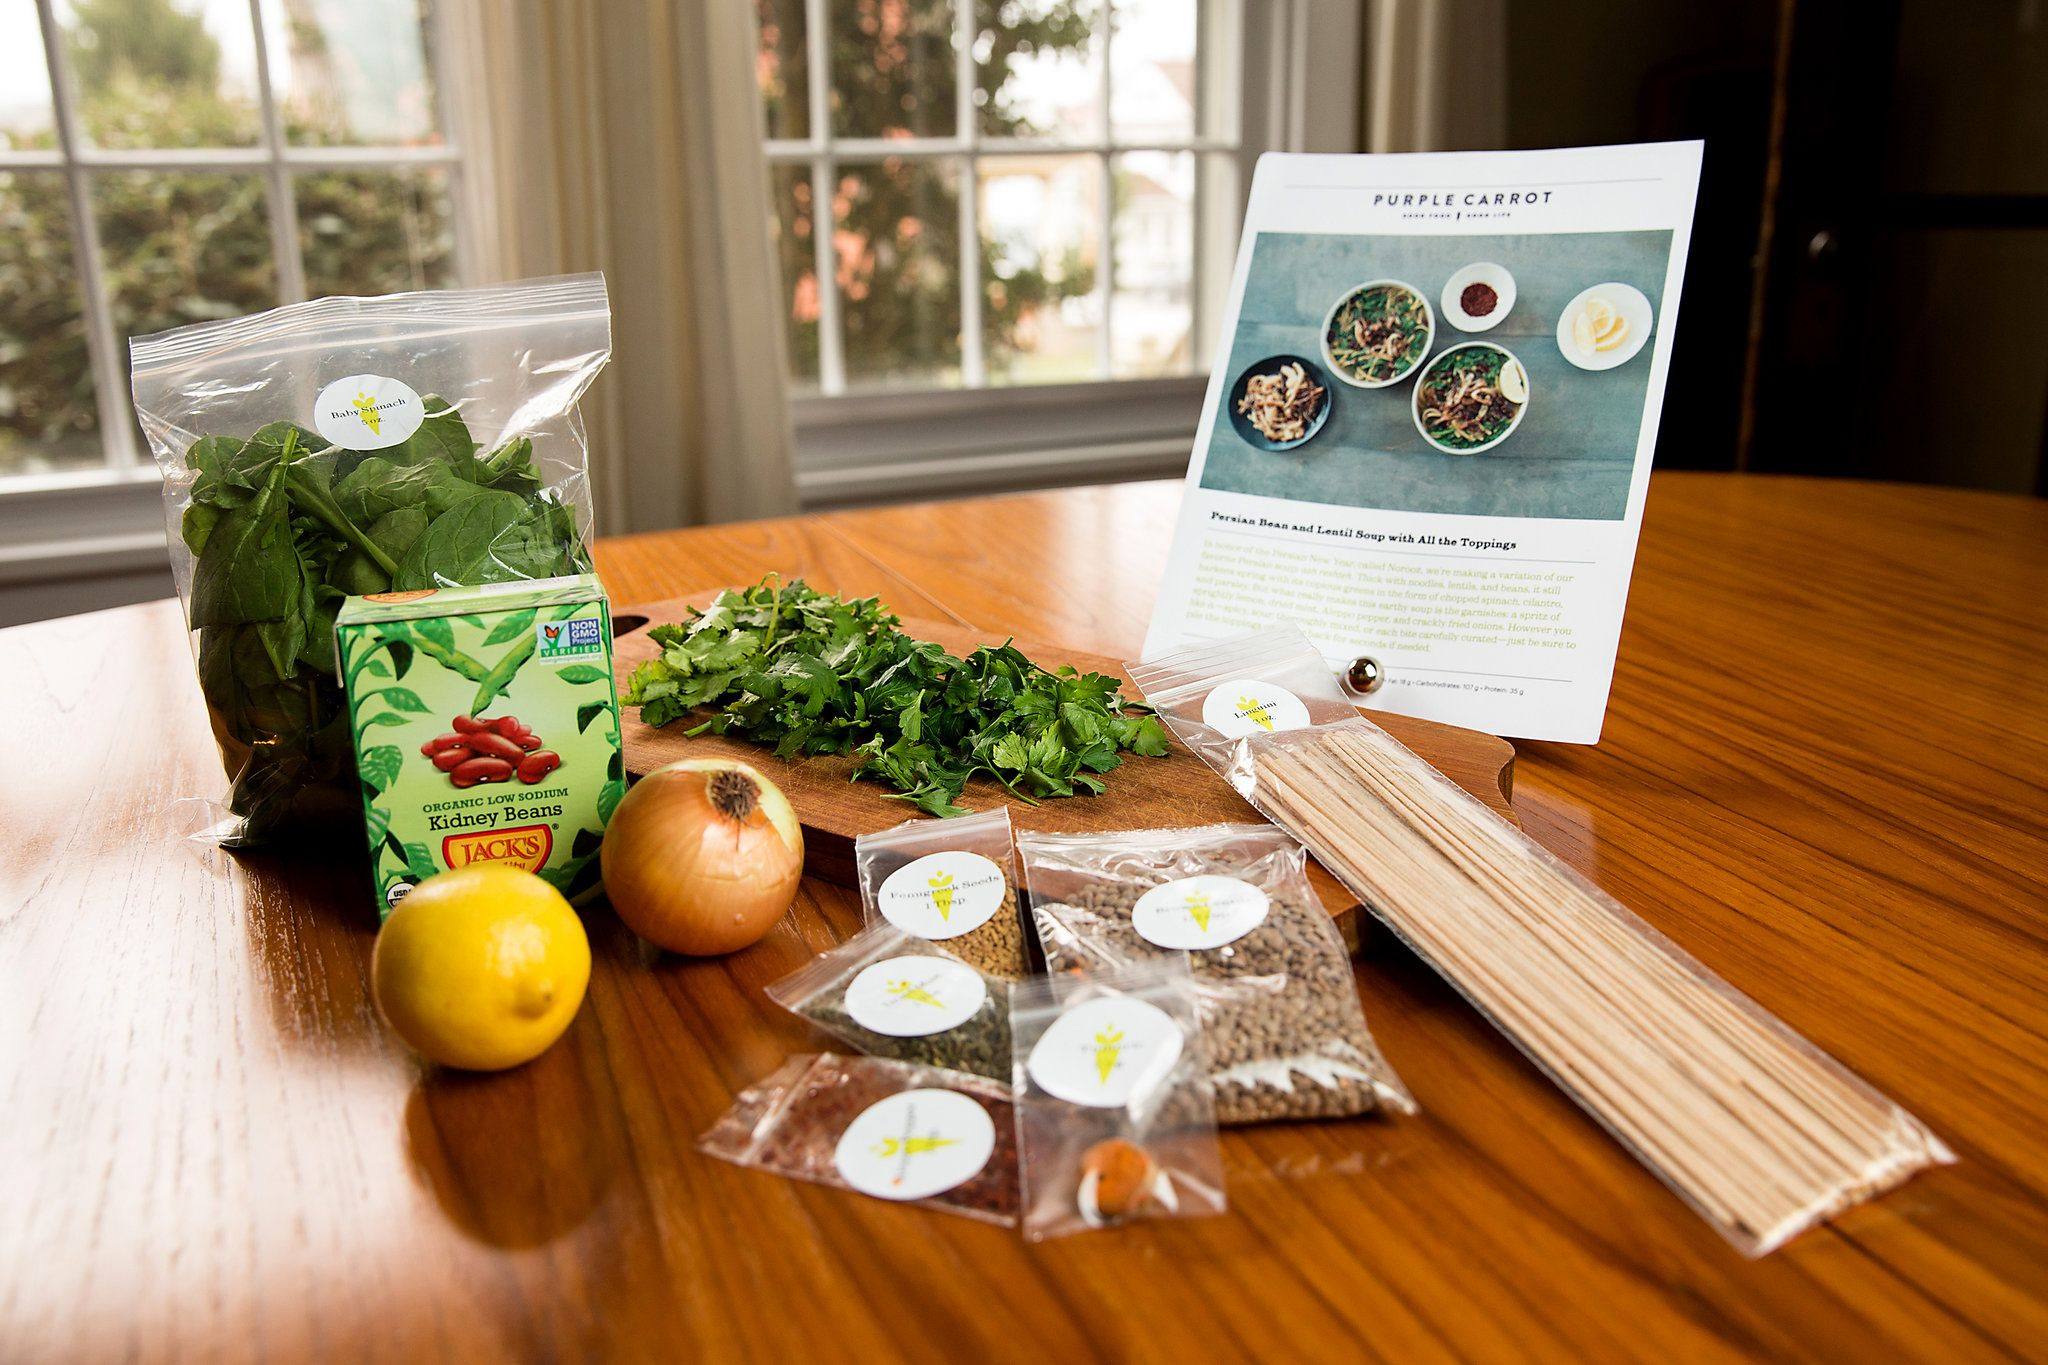 Blue apron instagram